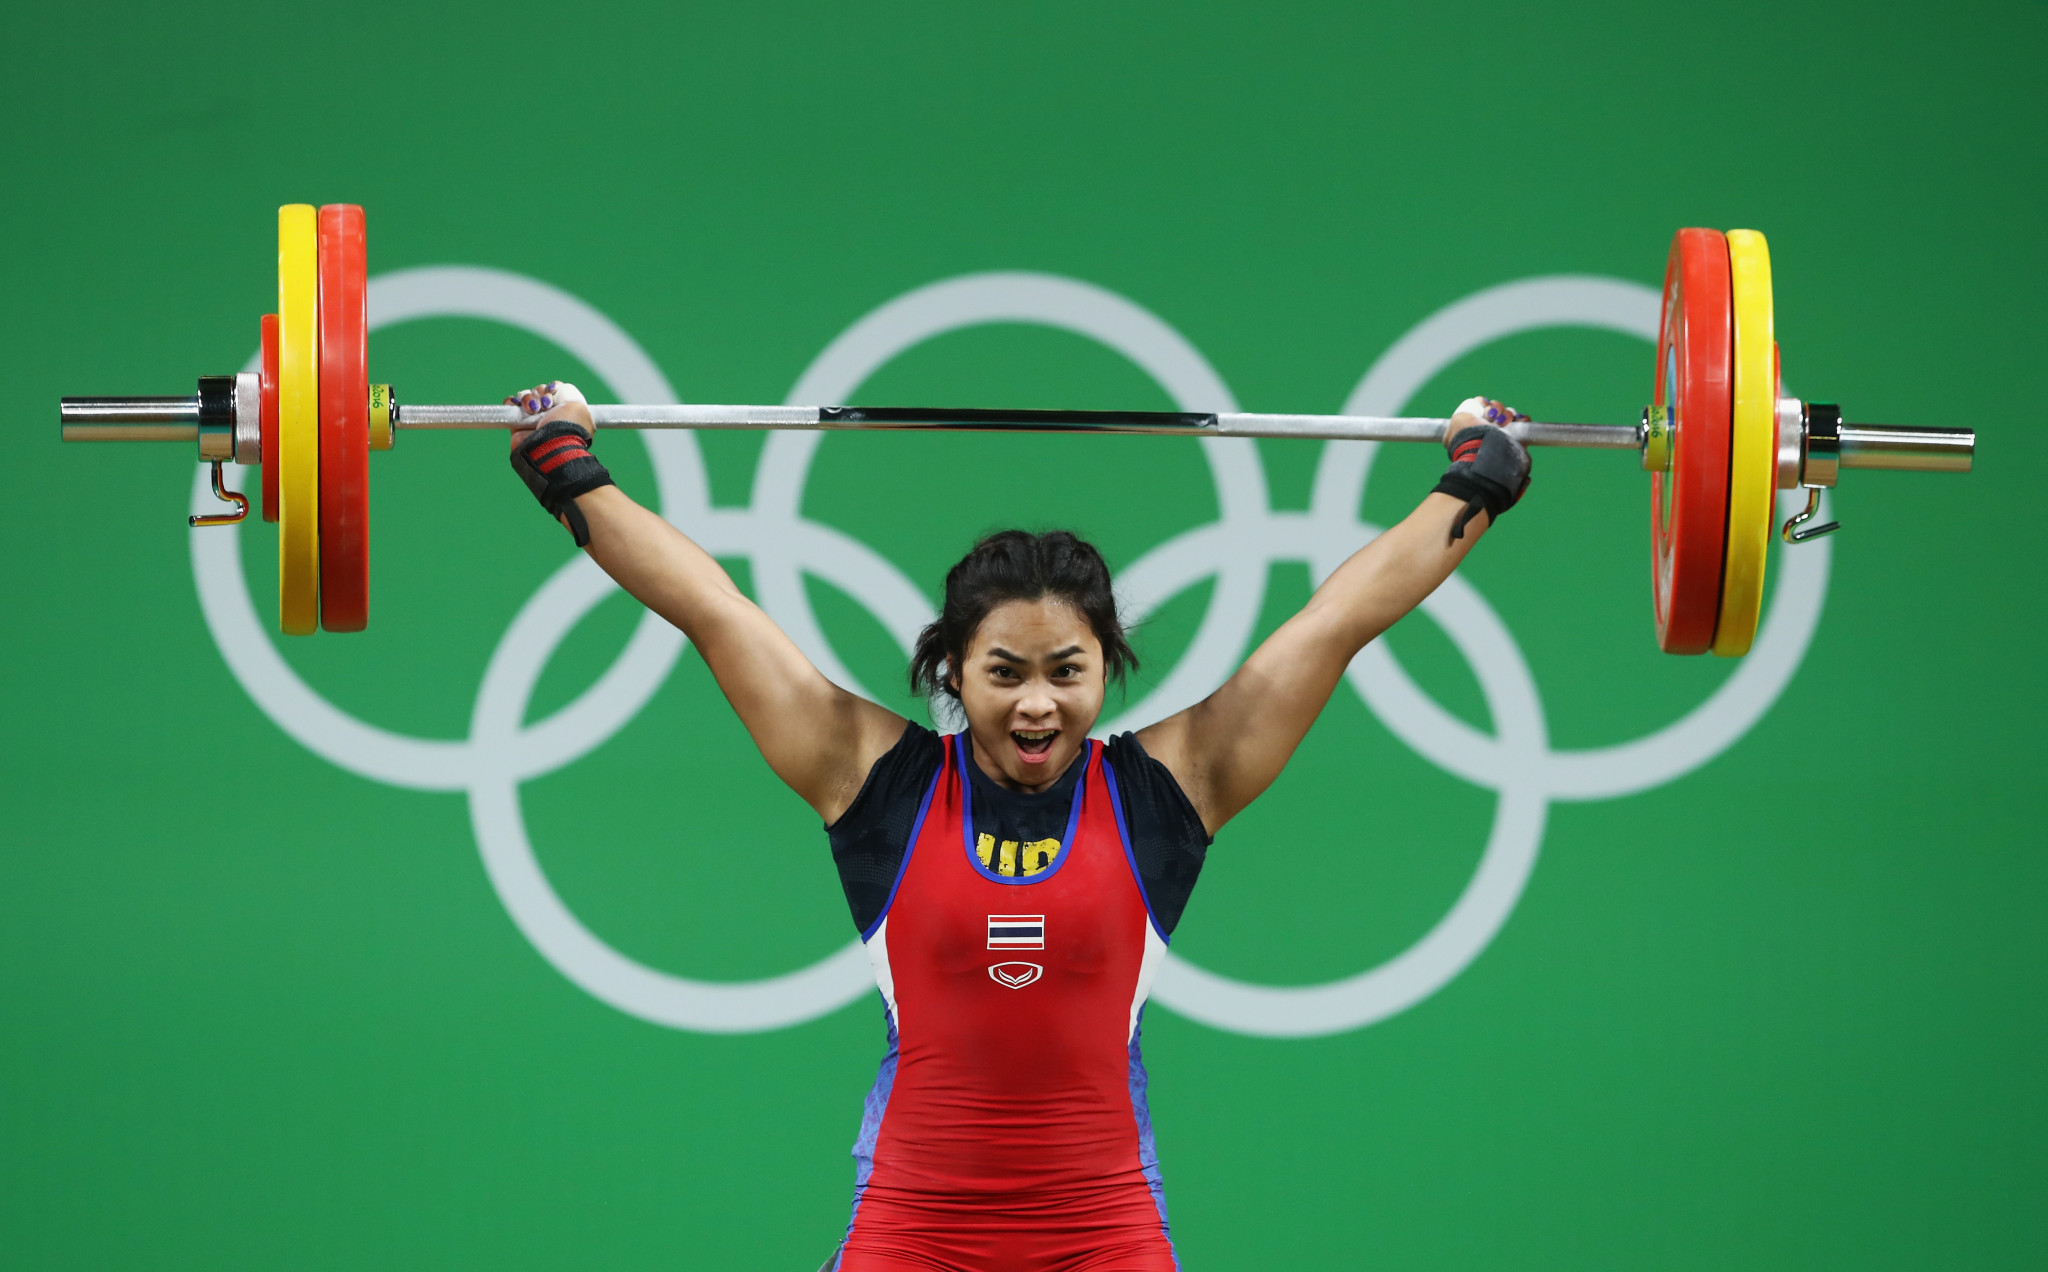 Thai weightlifter Siripuch Gulnoi admitted doping during an interview as part of a TV documentary in January, which started a turbulent five months for the sport of weightlifting ©Getty Images